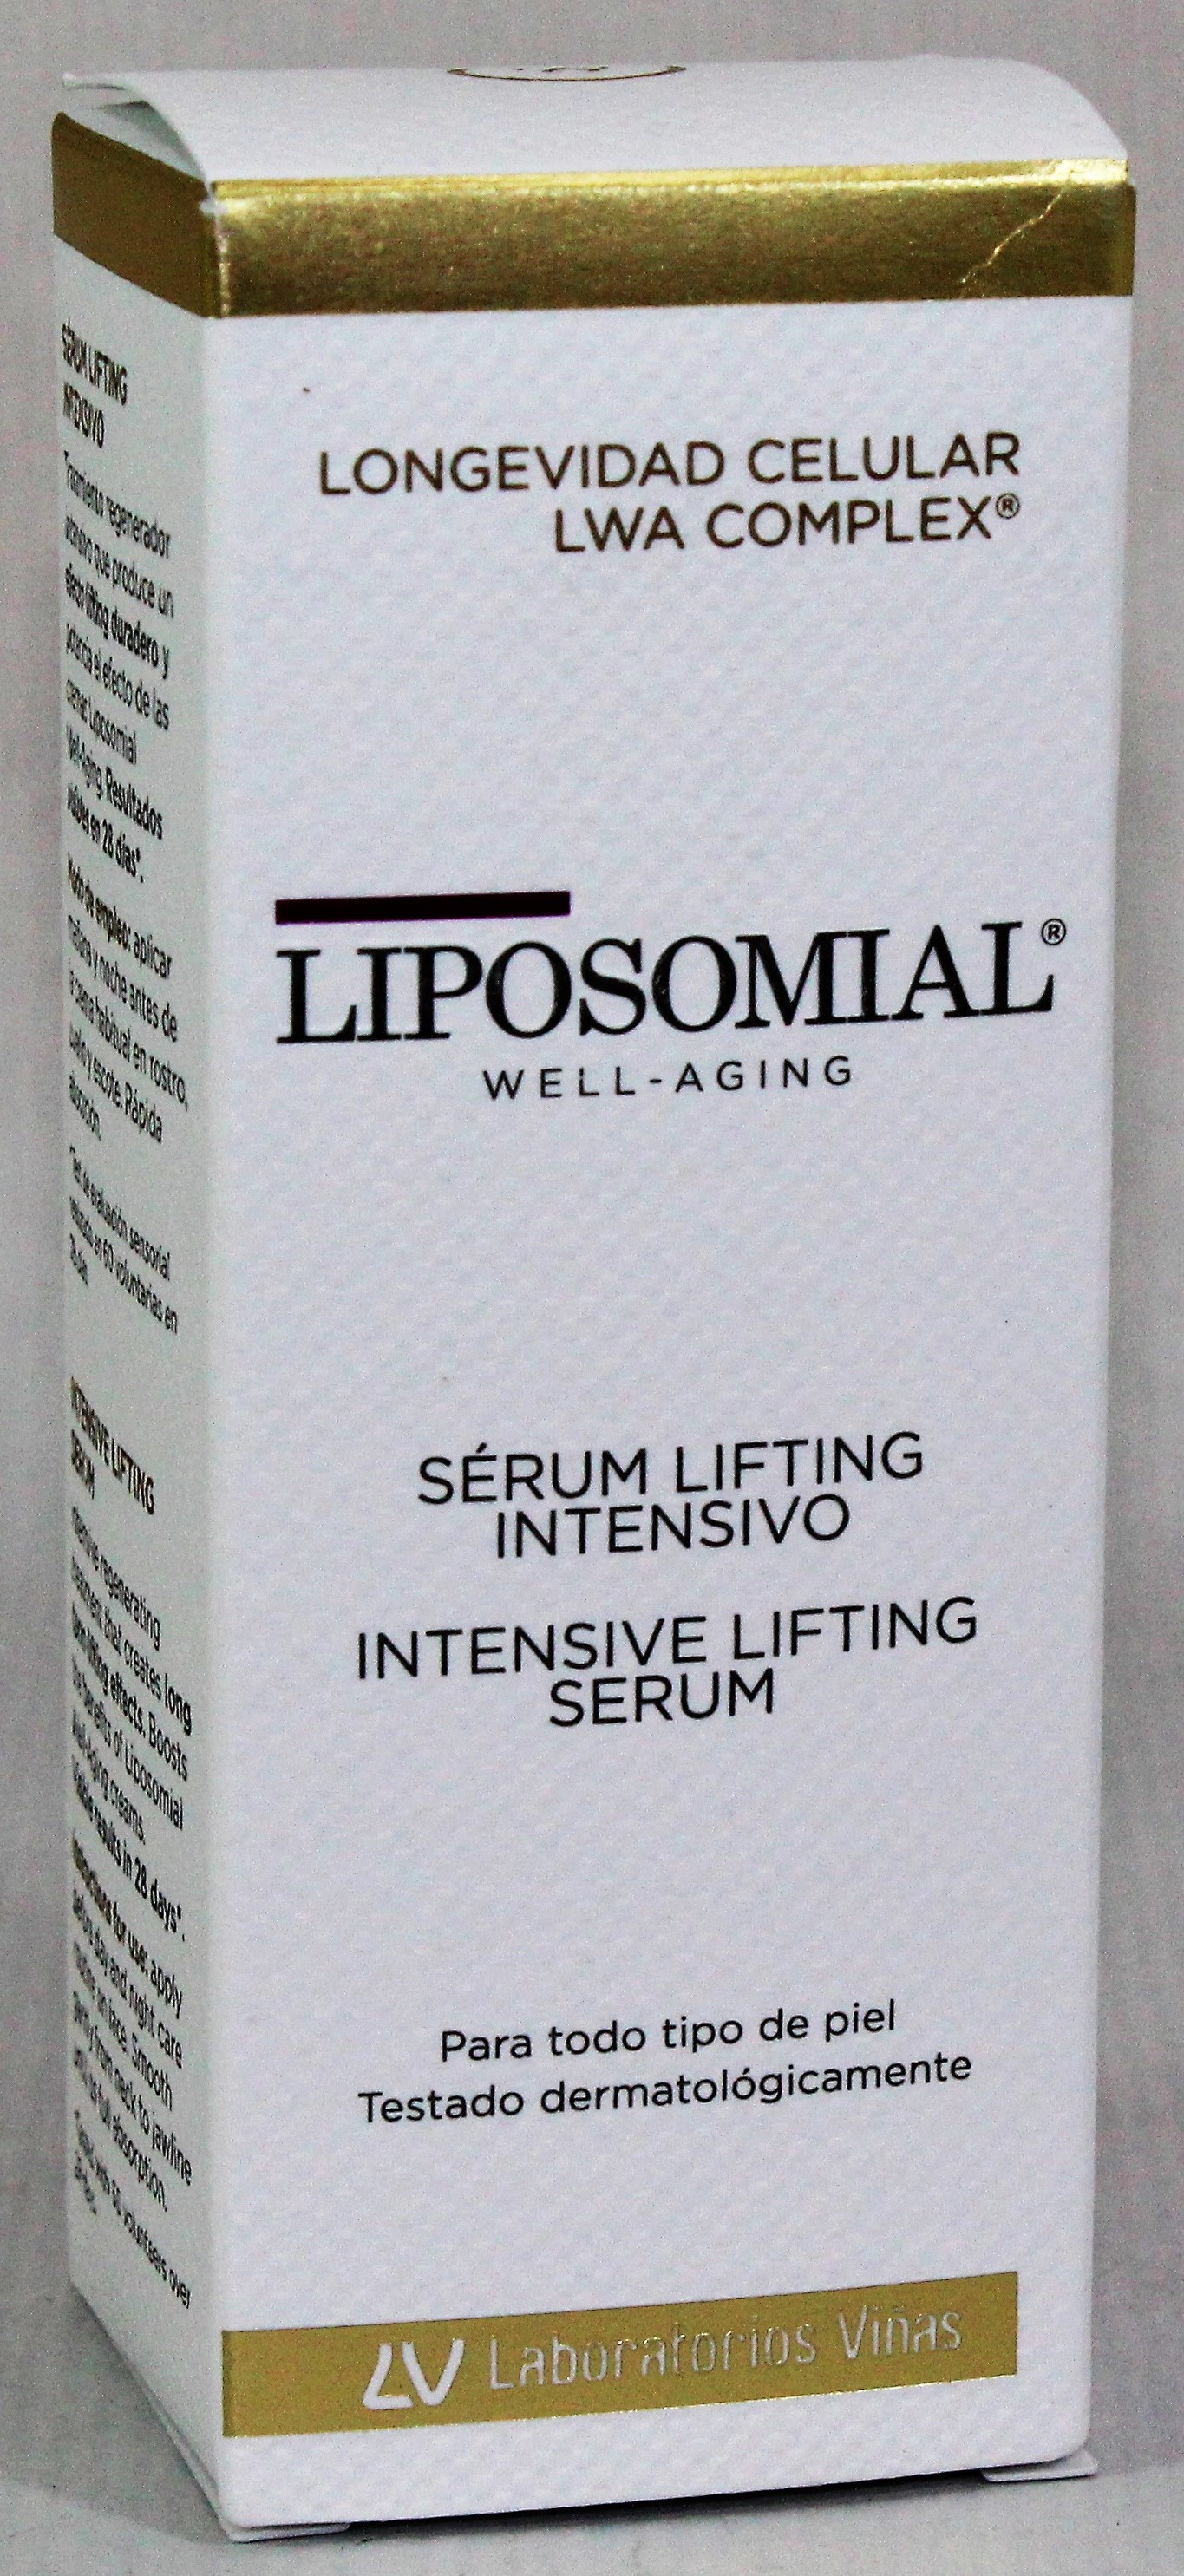 LIPOSOMIAL WELL-AGING SERUM LIFTING INTENSIVO 30